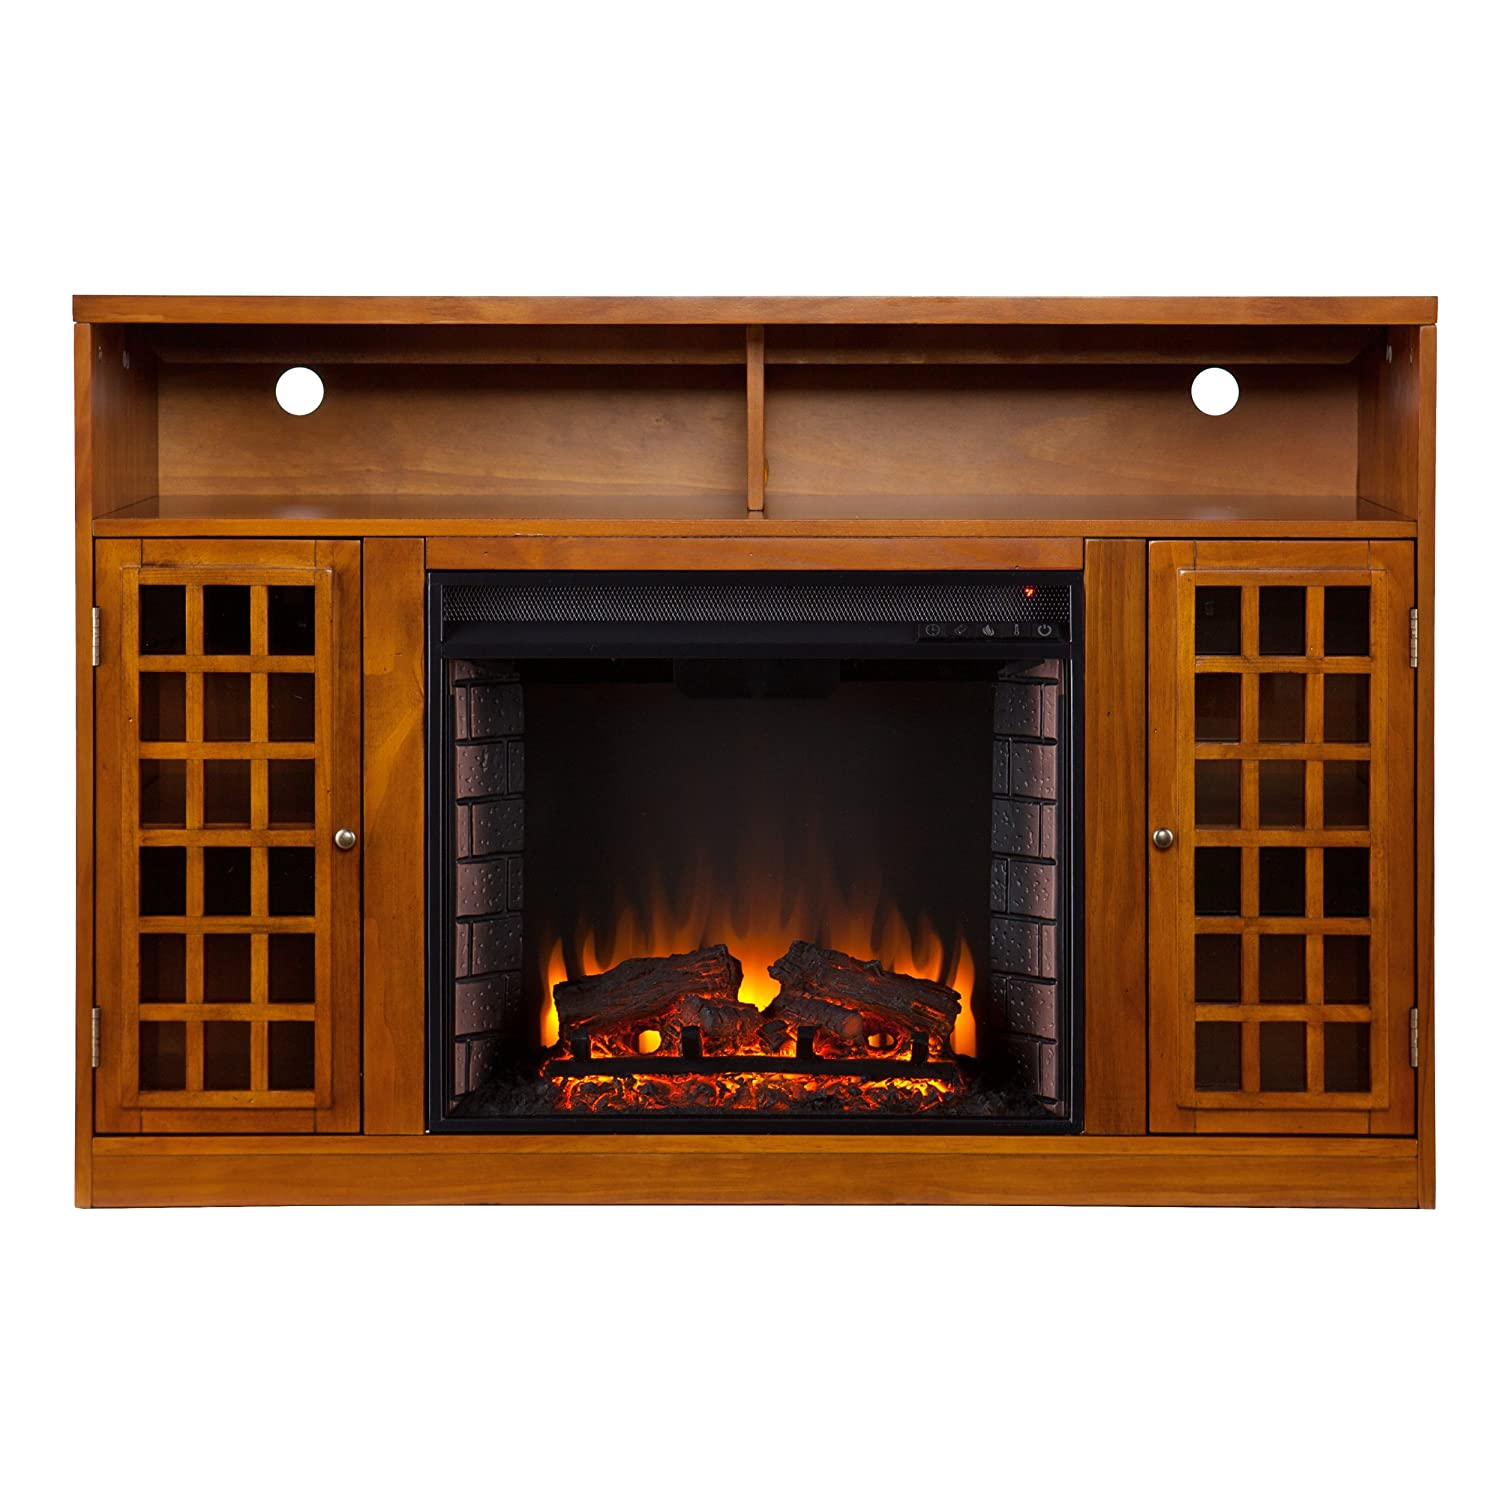 Our review of the Nartia electric fireplace entertainment media center by SEI reveals need to know information. We provide honest